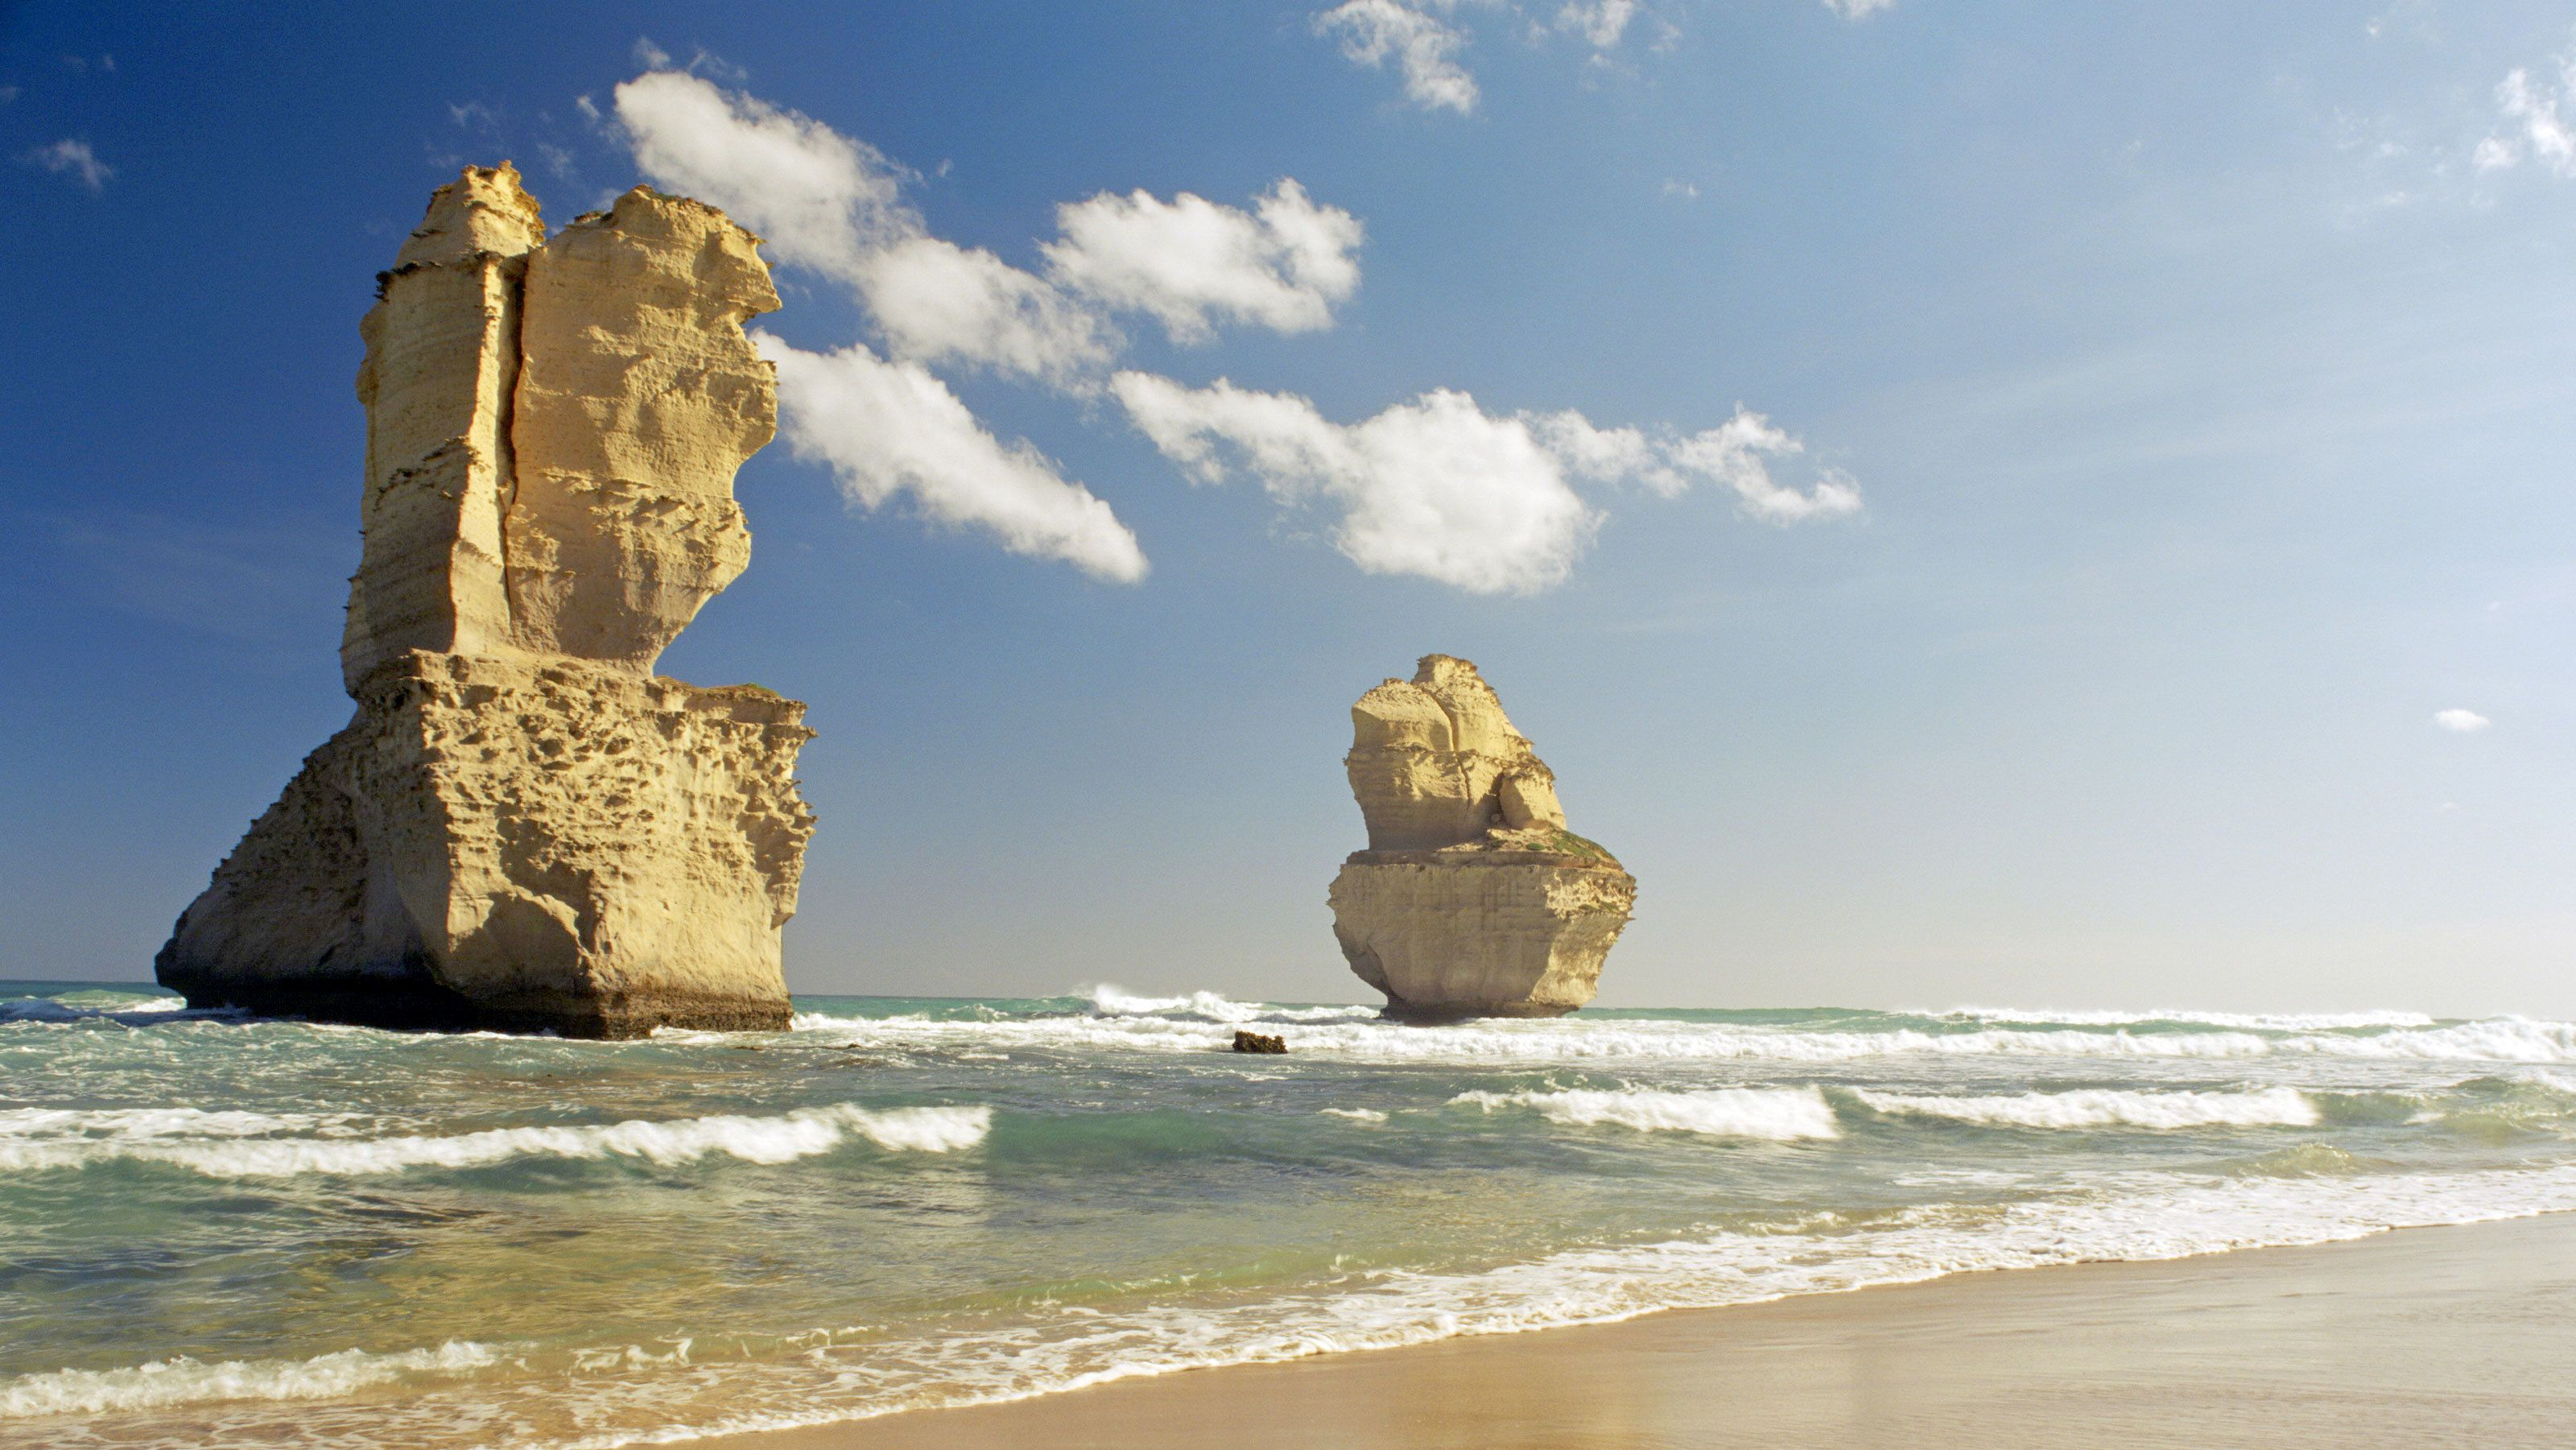 Two of the Twelve Apostles from beach level.